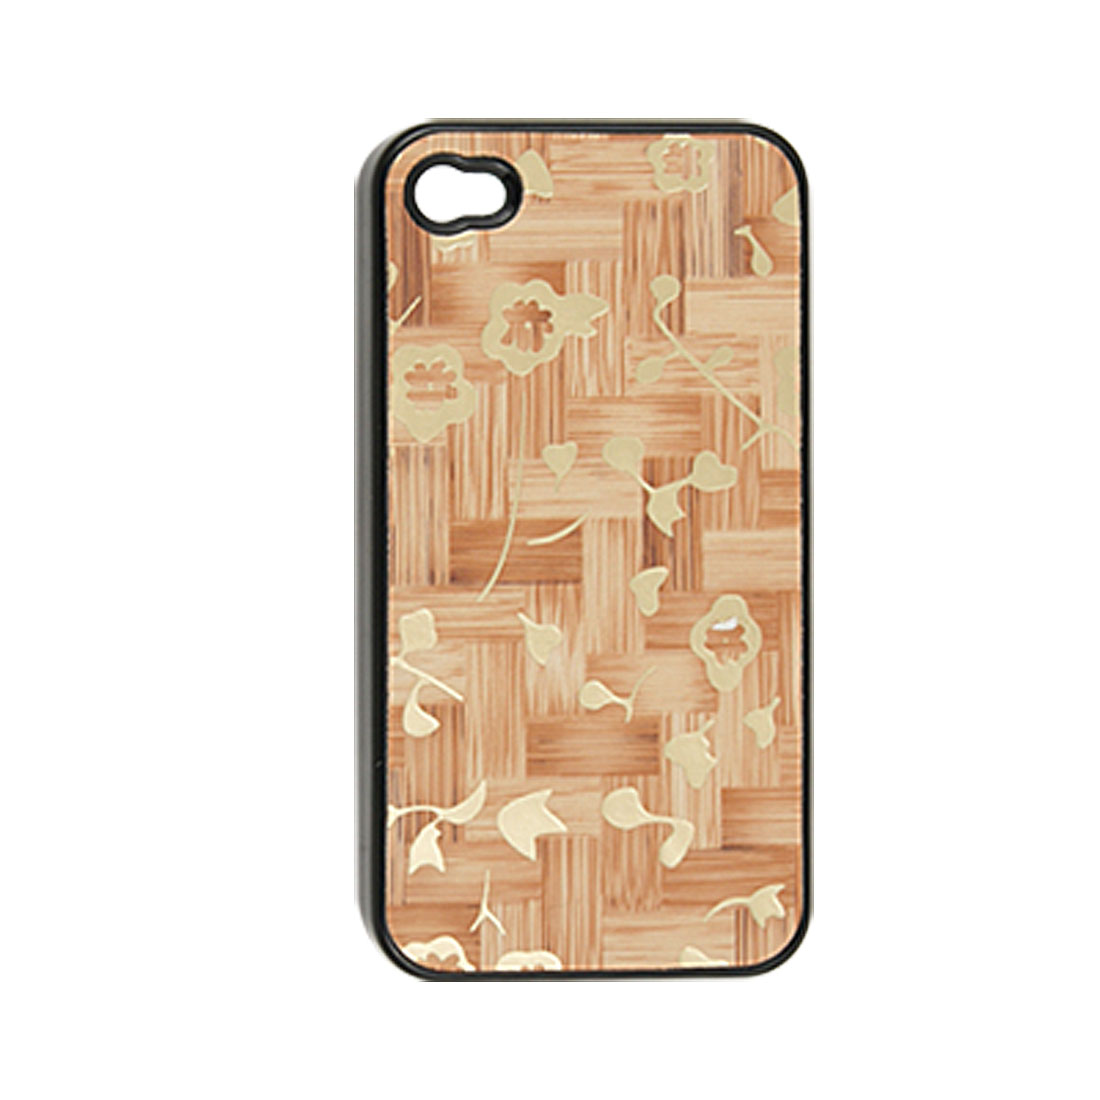 Gold Tone Flower Print Faux Leather Coated Plastic Cover for iPhone 4 4G